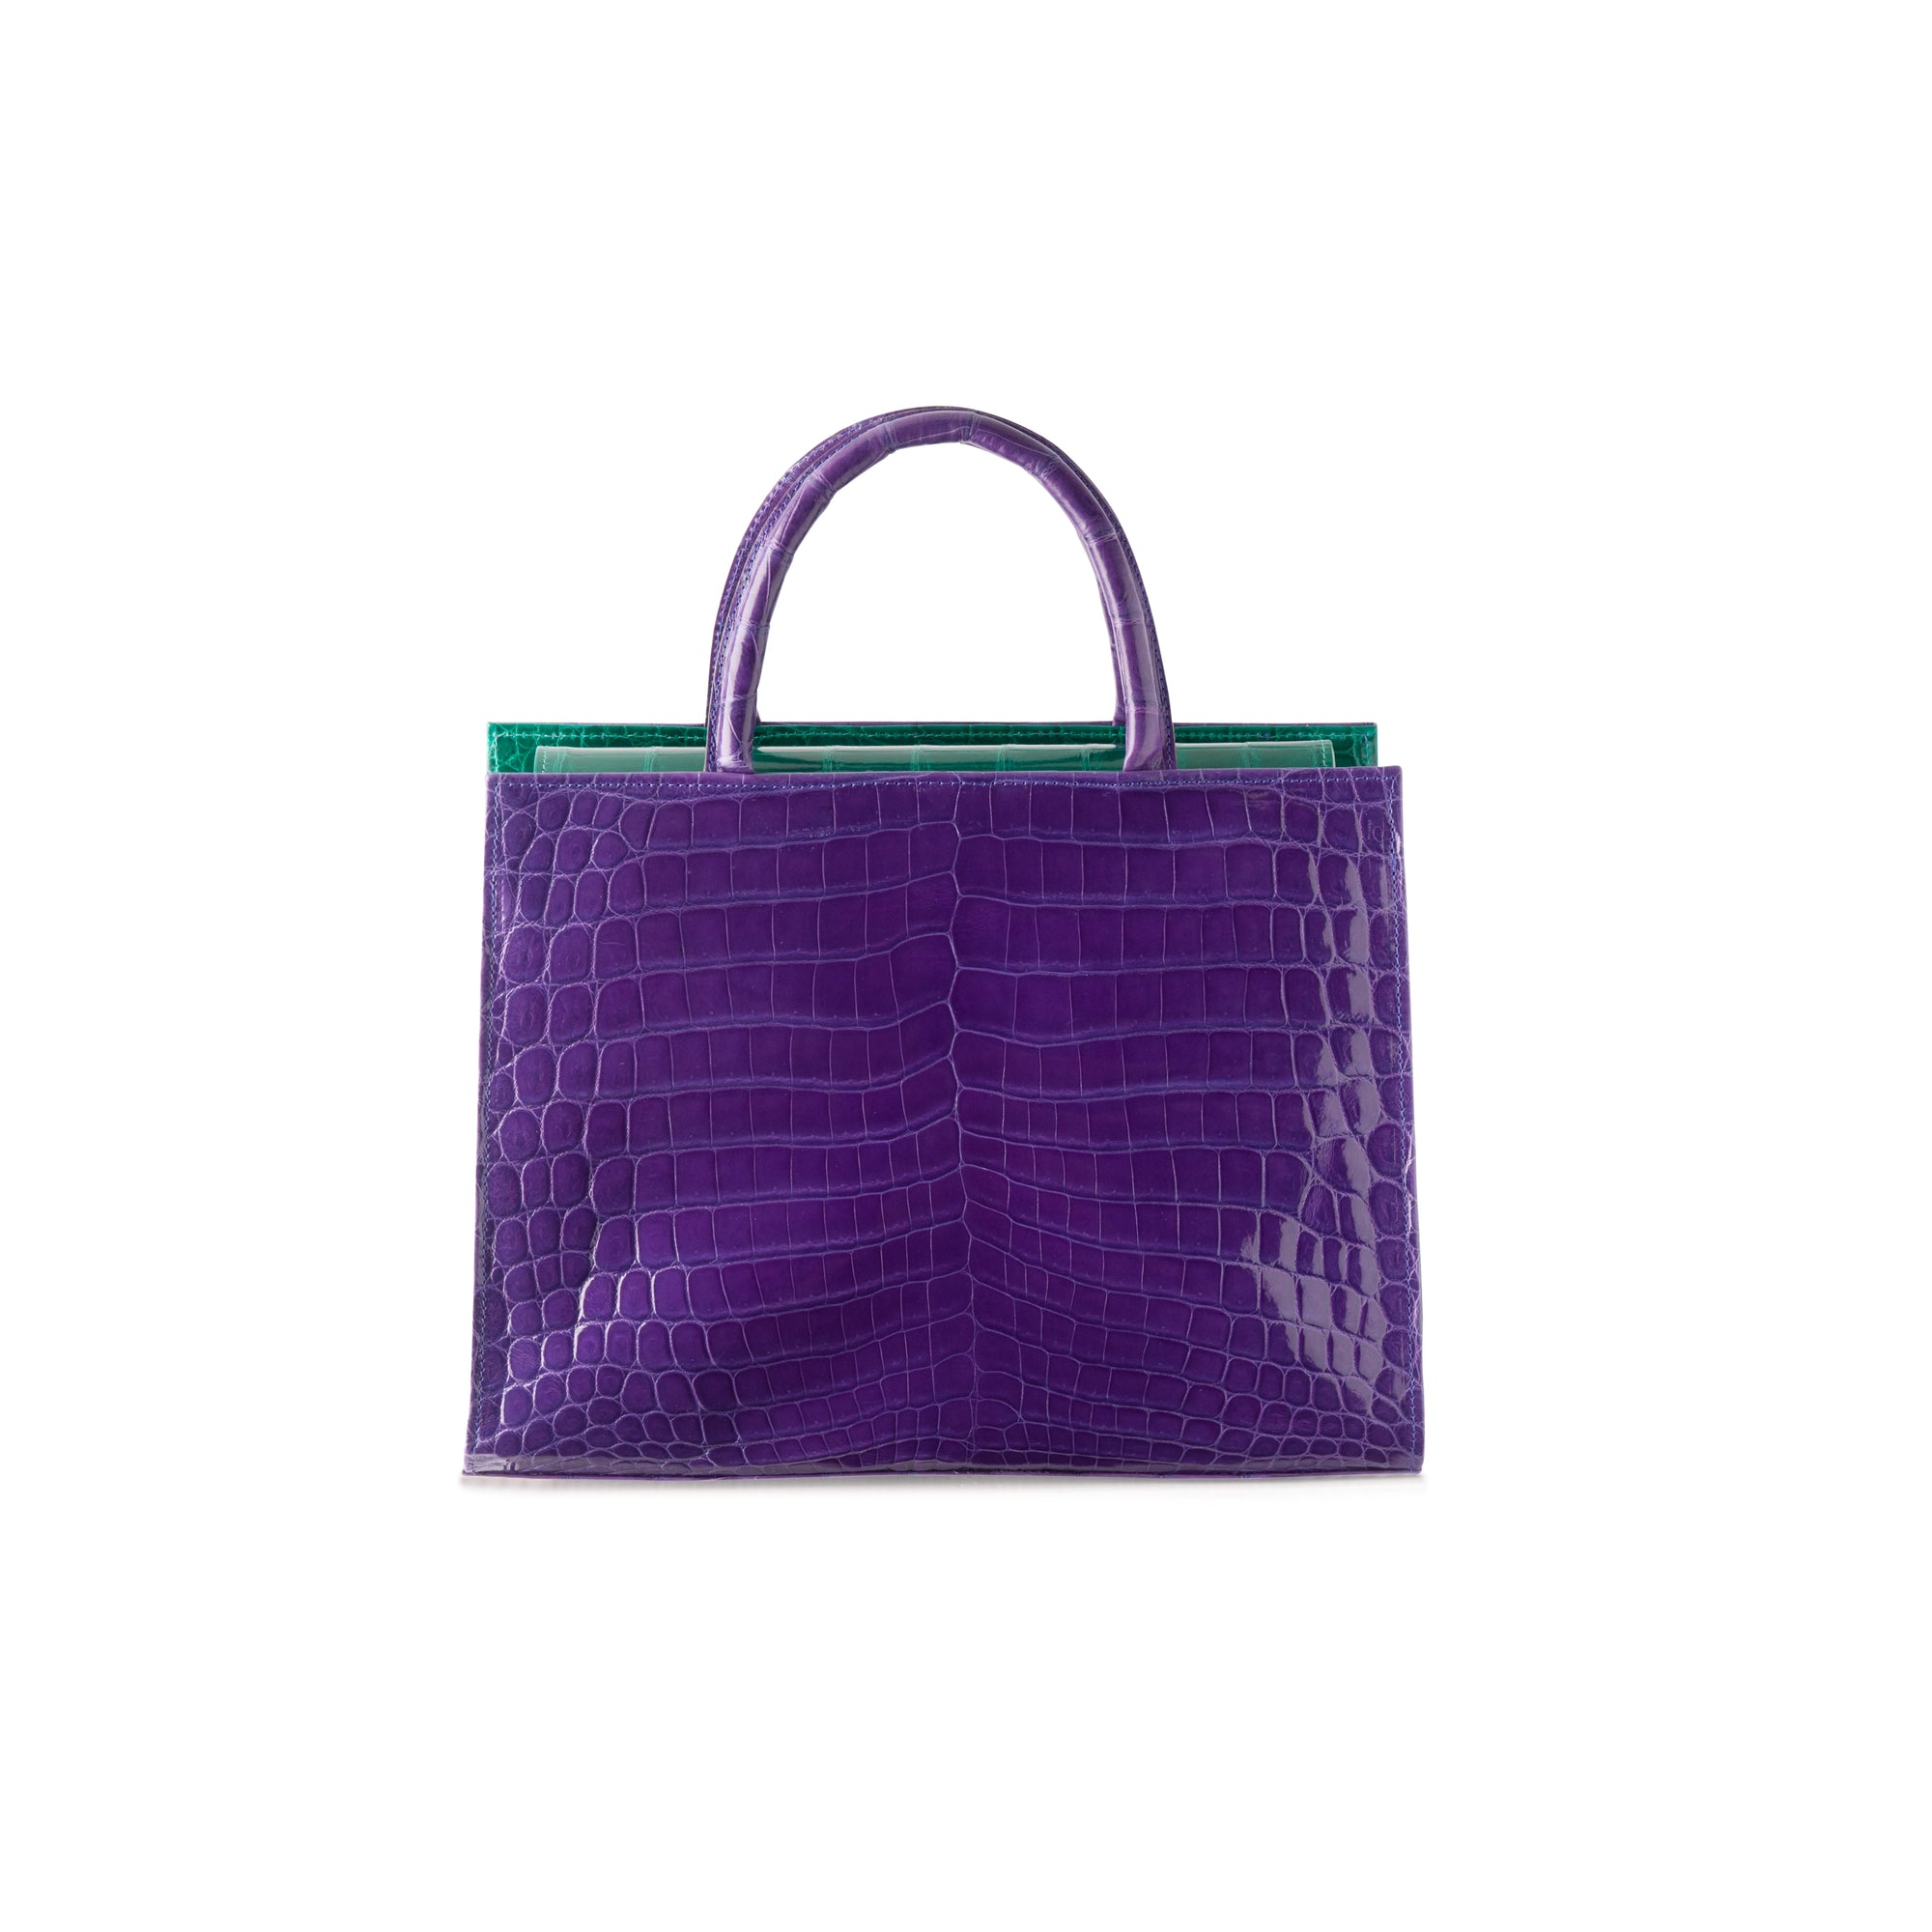 LIN8 Australia's first smart fashion. Design,create,customise,personalise your own bespoke luxury crocodile leather bag,handbag,tote bag.Made in Australia